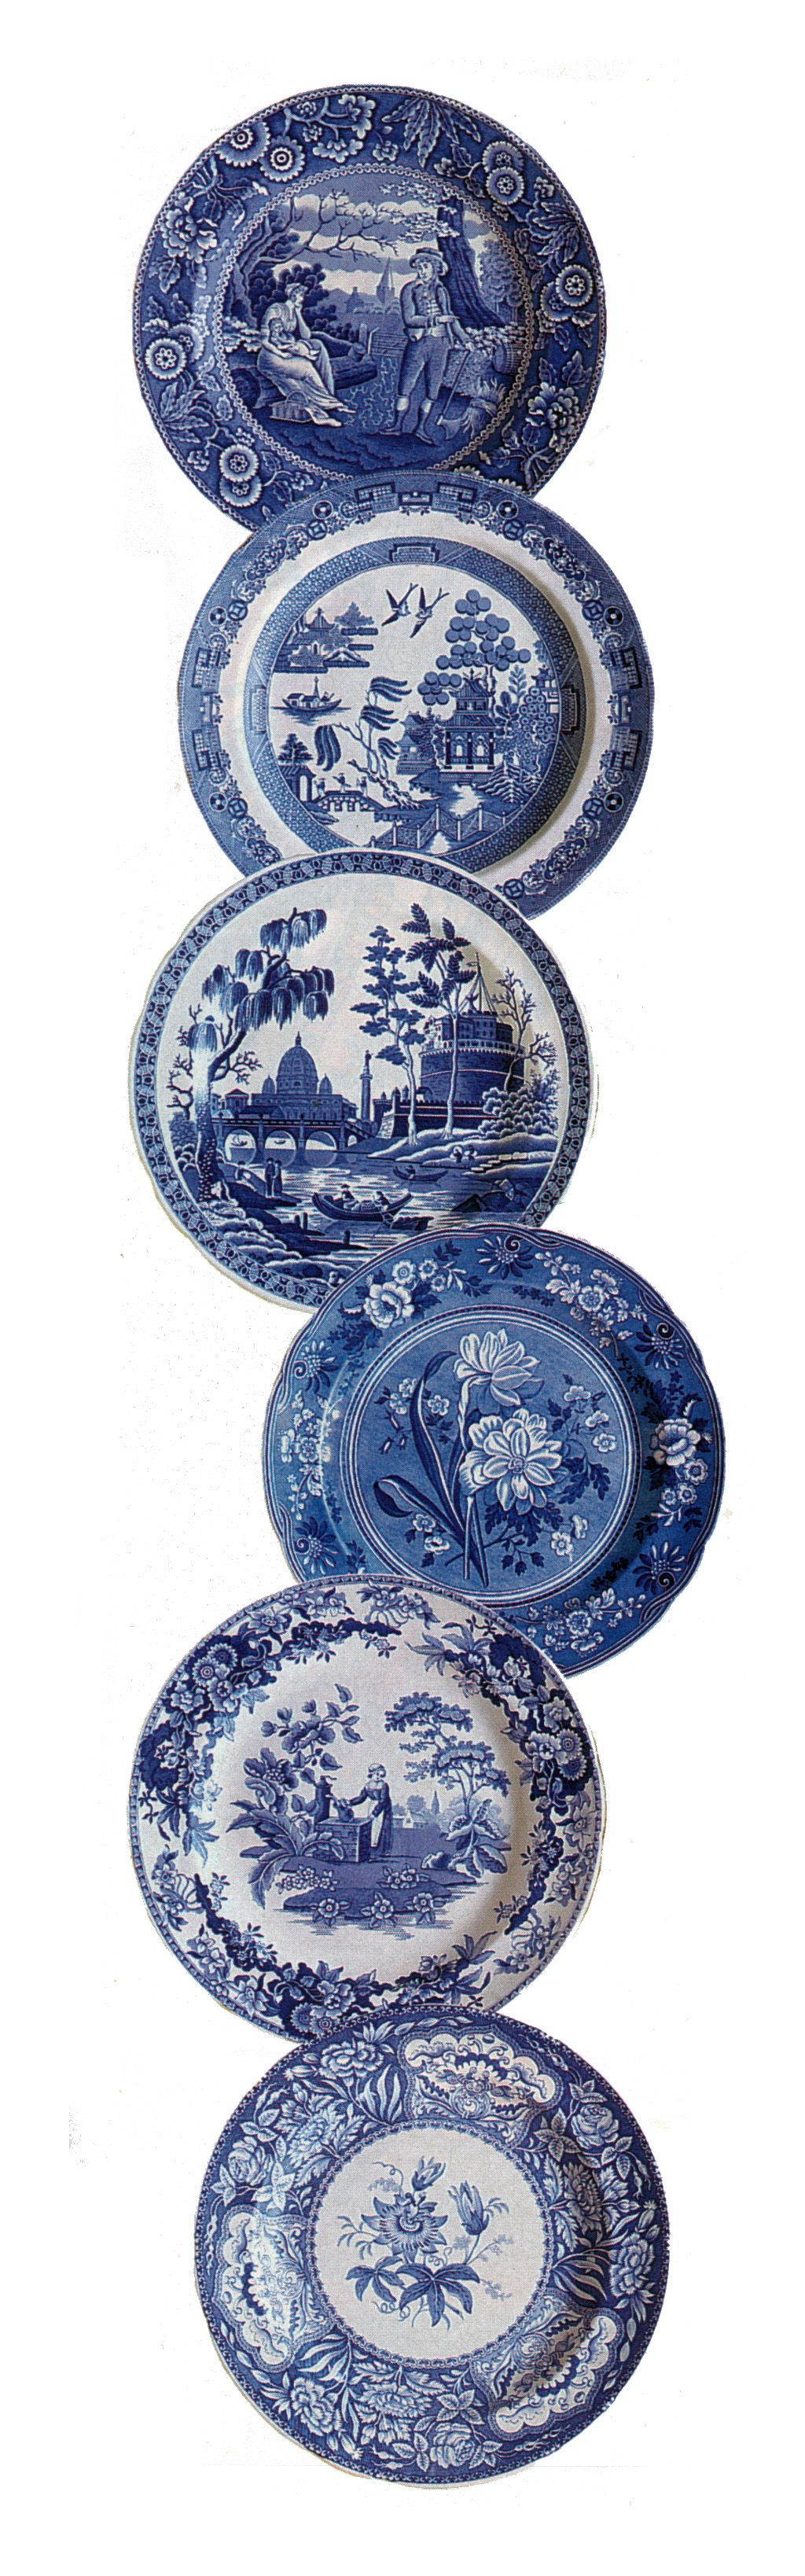 Spode China Patterns Cool Decorating Design